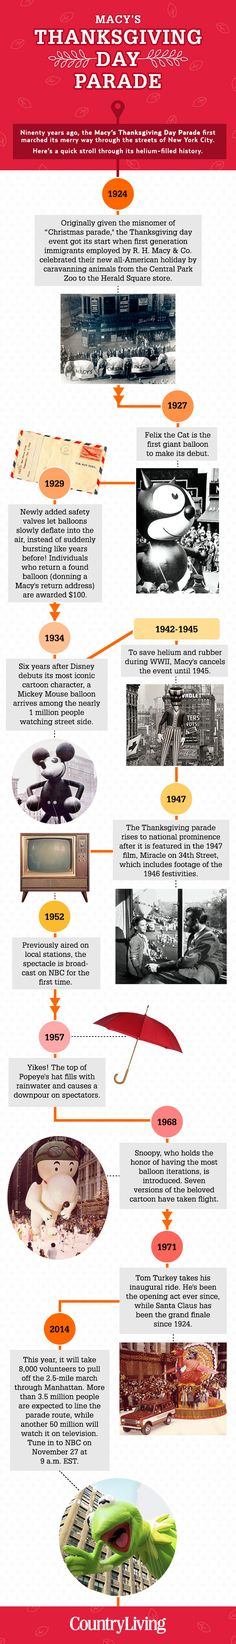 A quick stroll through the helium-filled history of everyone's favorite parade.